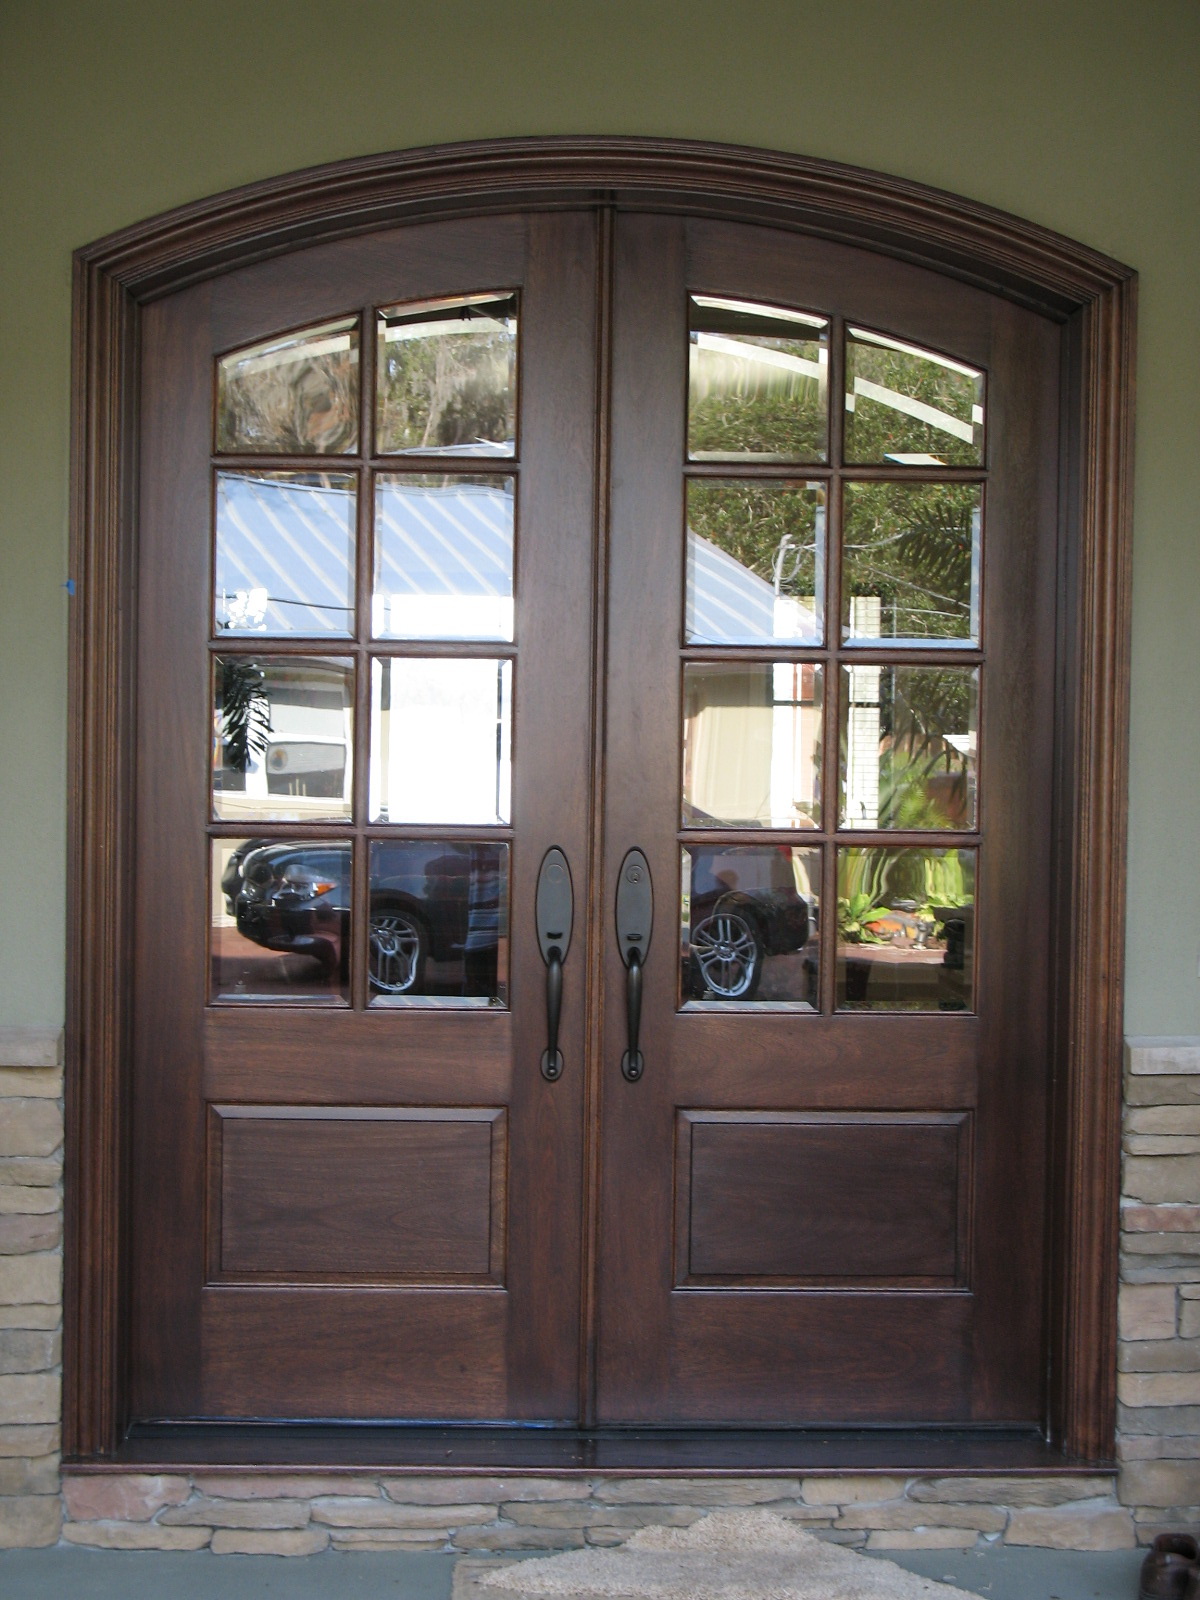 1000 images about front doors on pinterest for Front window ideas